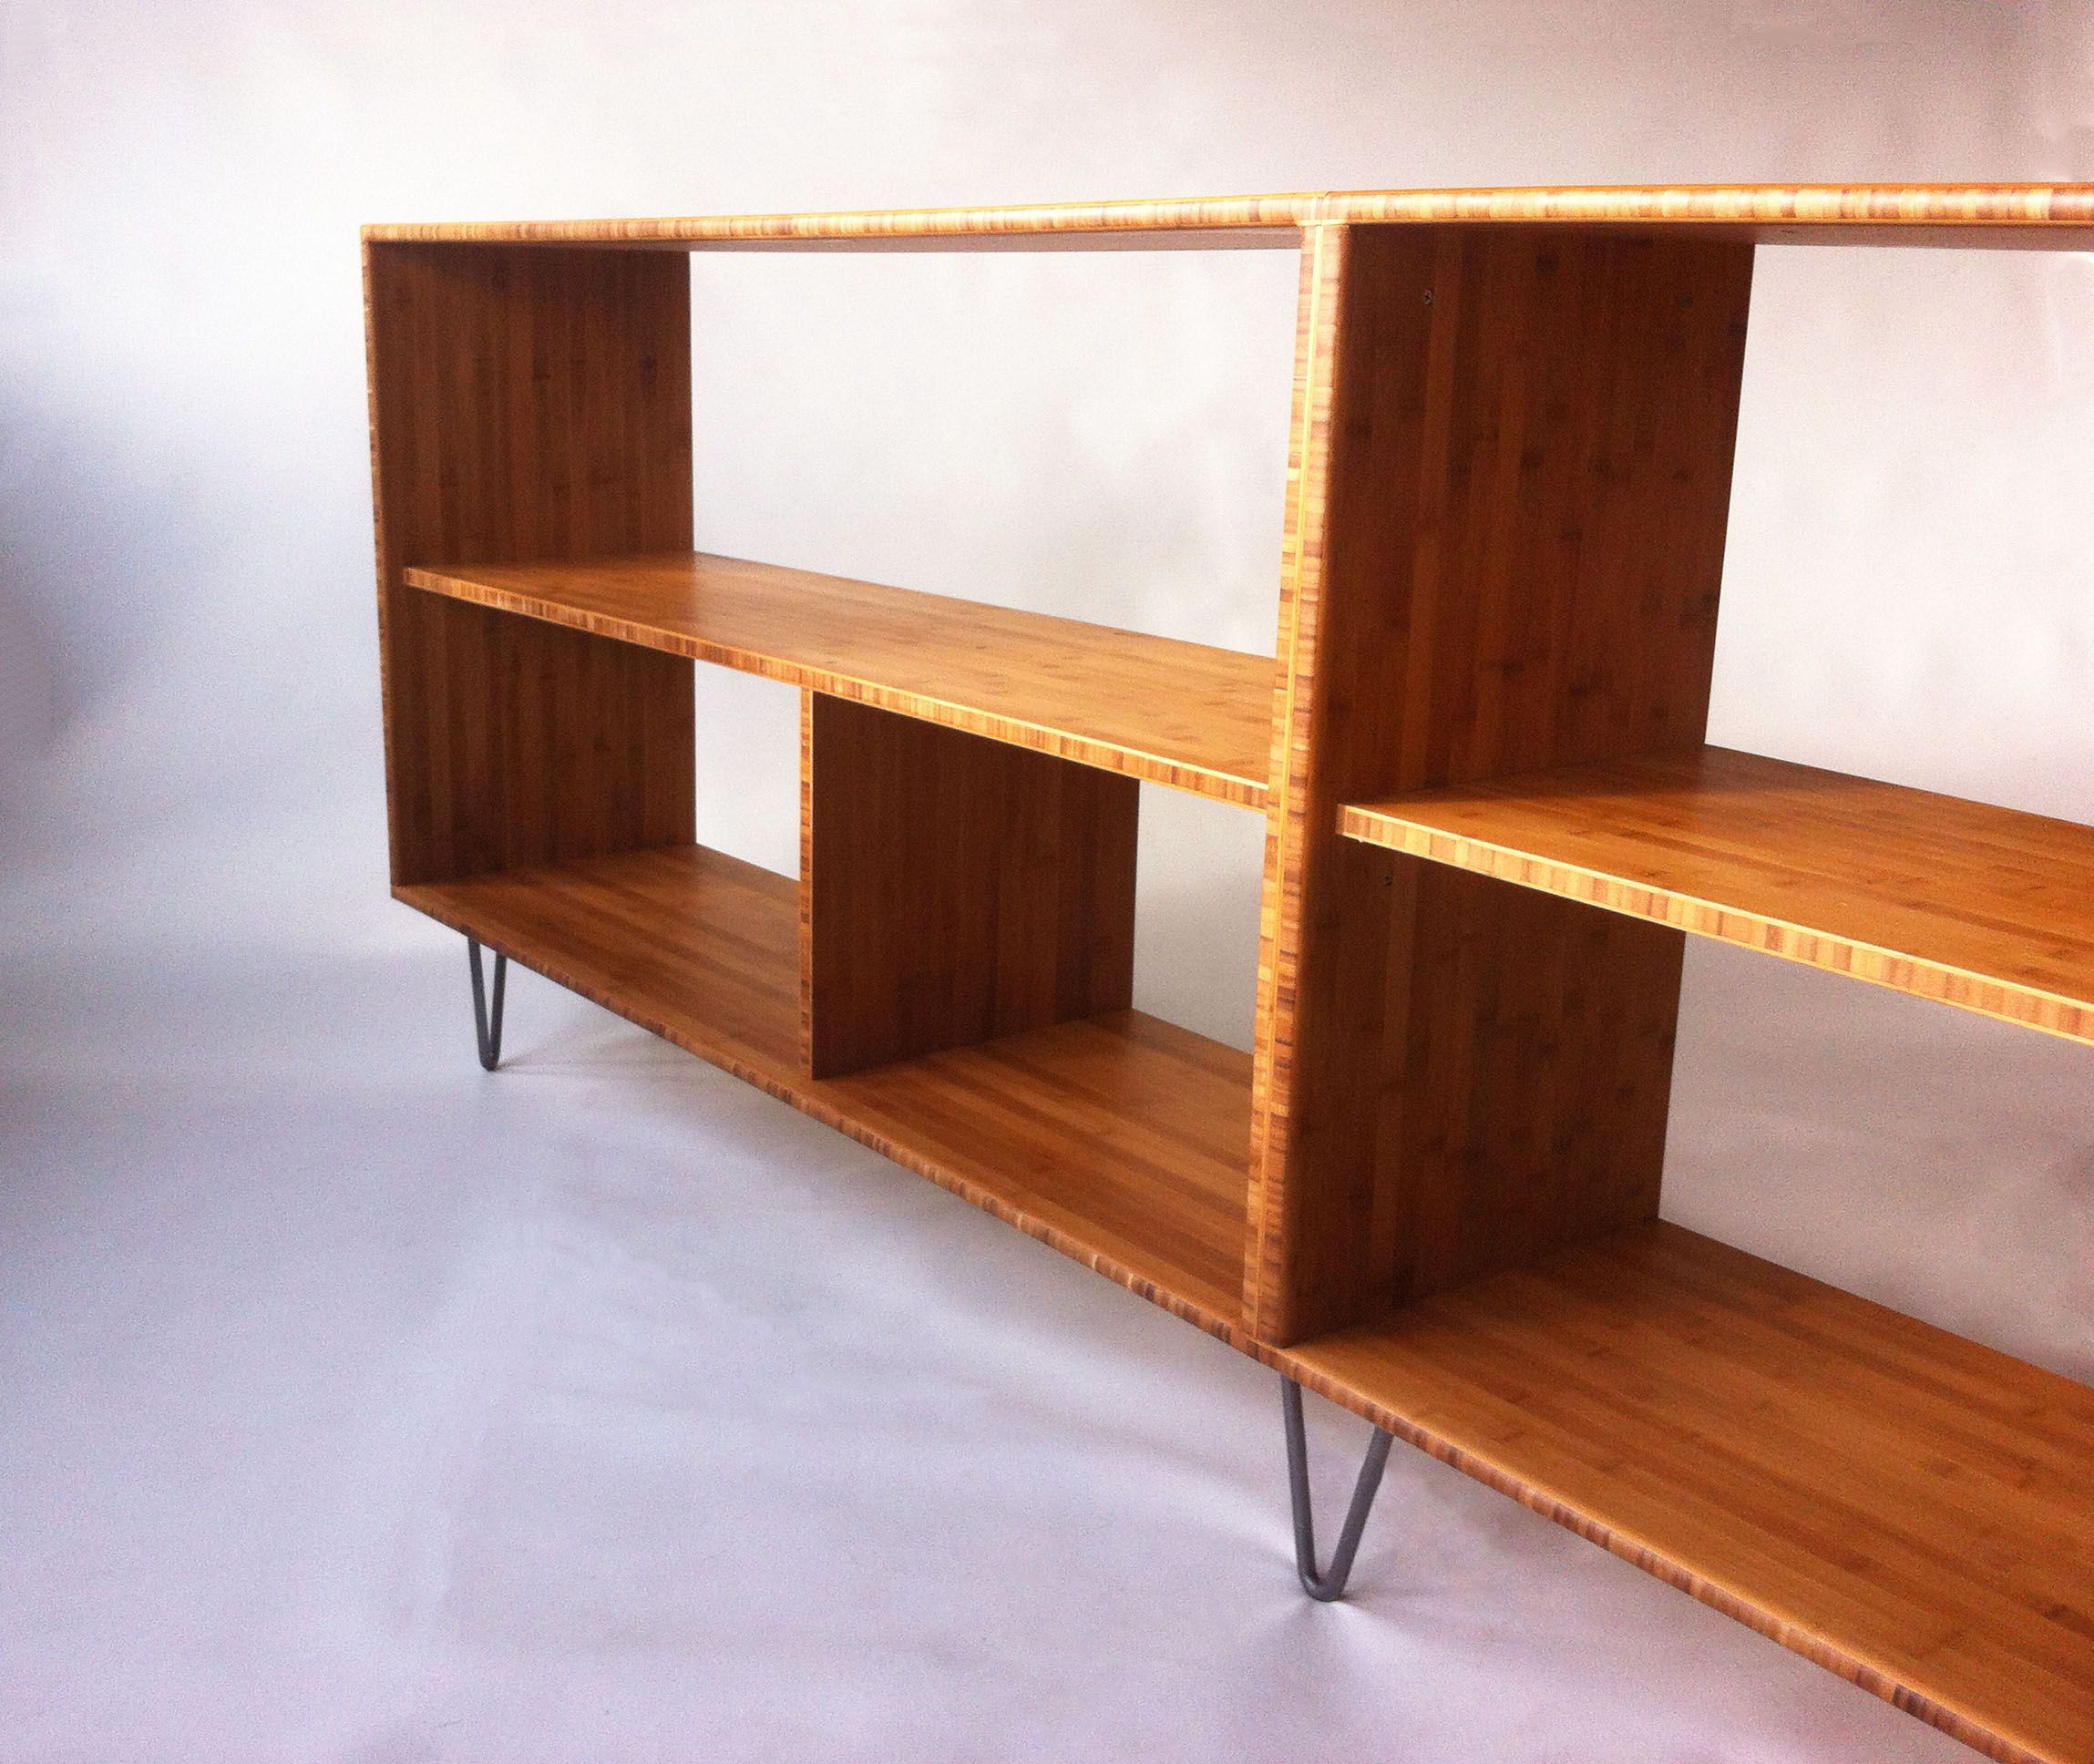 Buy Hand Crafted Mid Century Modern Style Bookcase In Solid